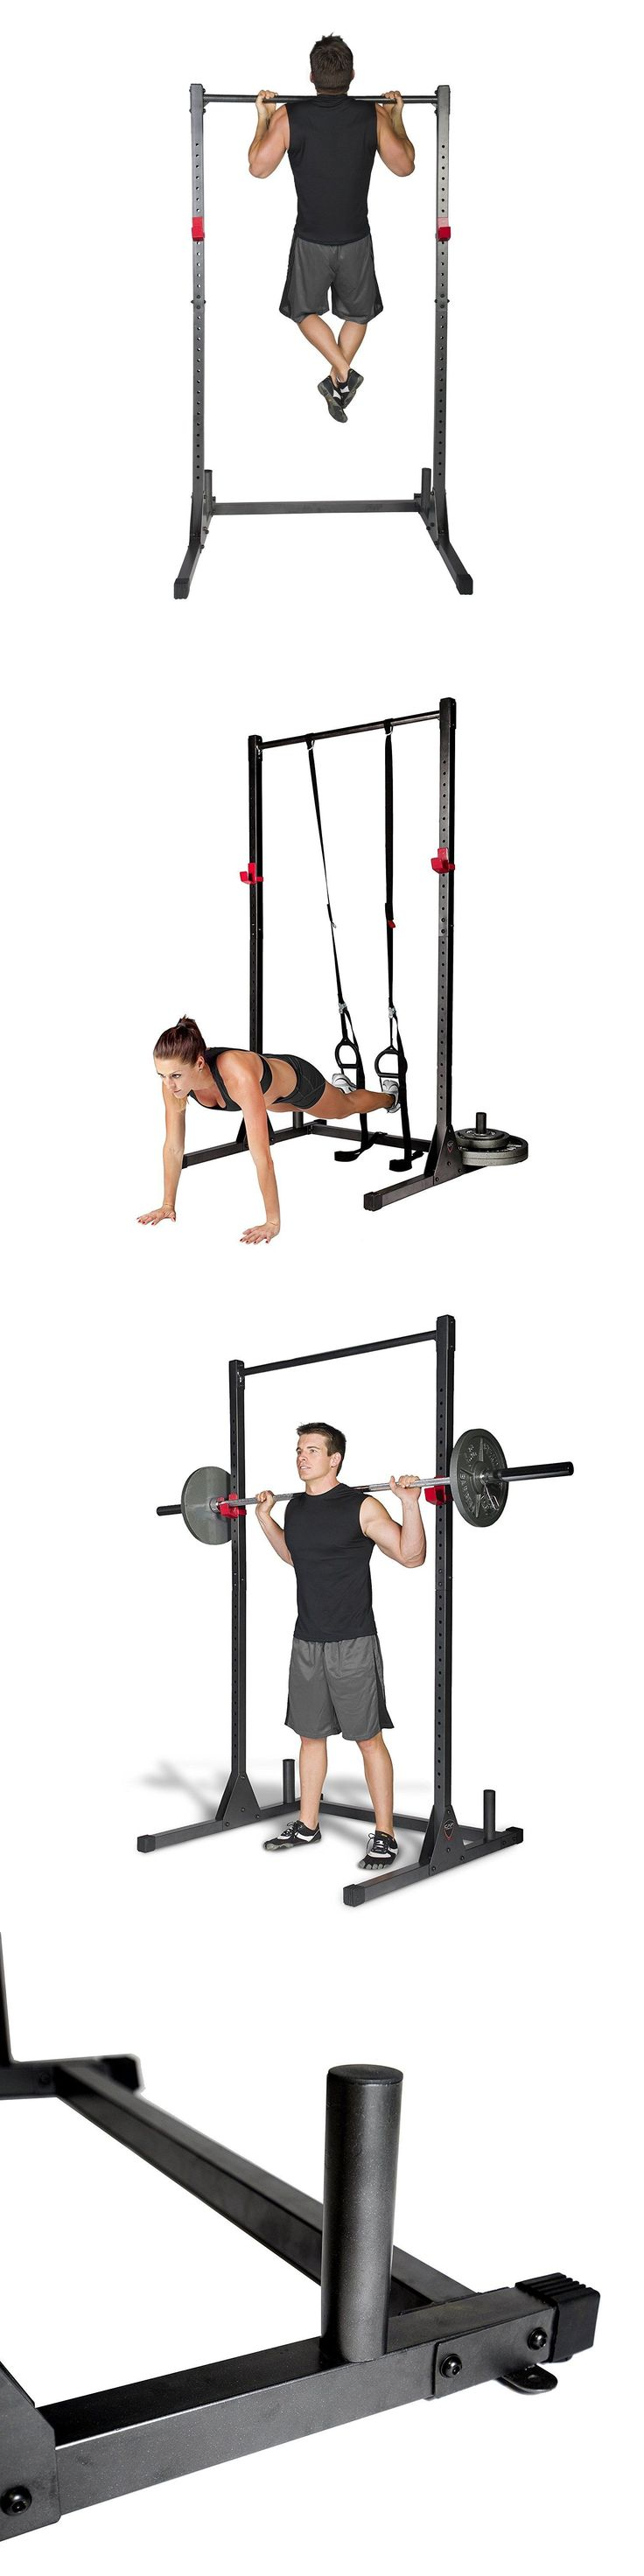 Pull Up Bars 179816: Power Tower Rack Exercise Stand Free Standing Pull Up Bar Home Gym Cap Strength -> BUY IT NOW ONLY: $85.01 on eBay!